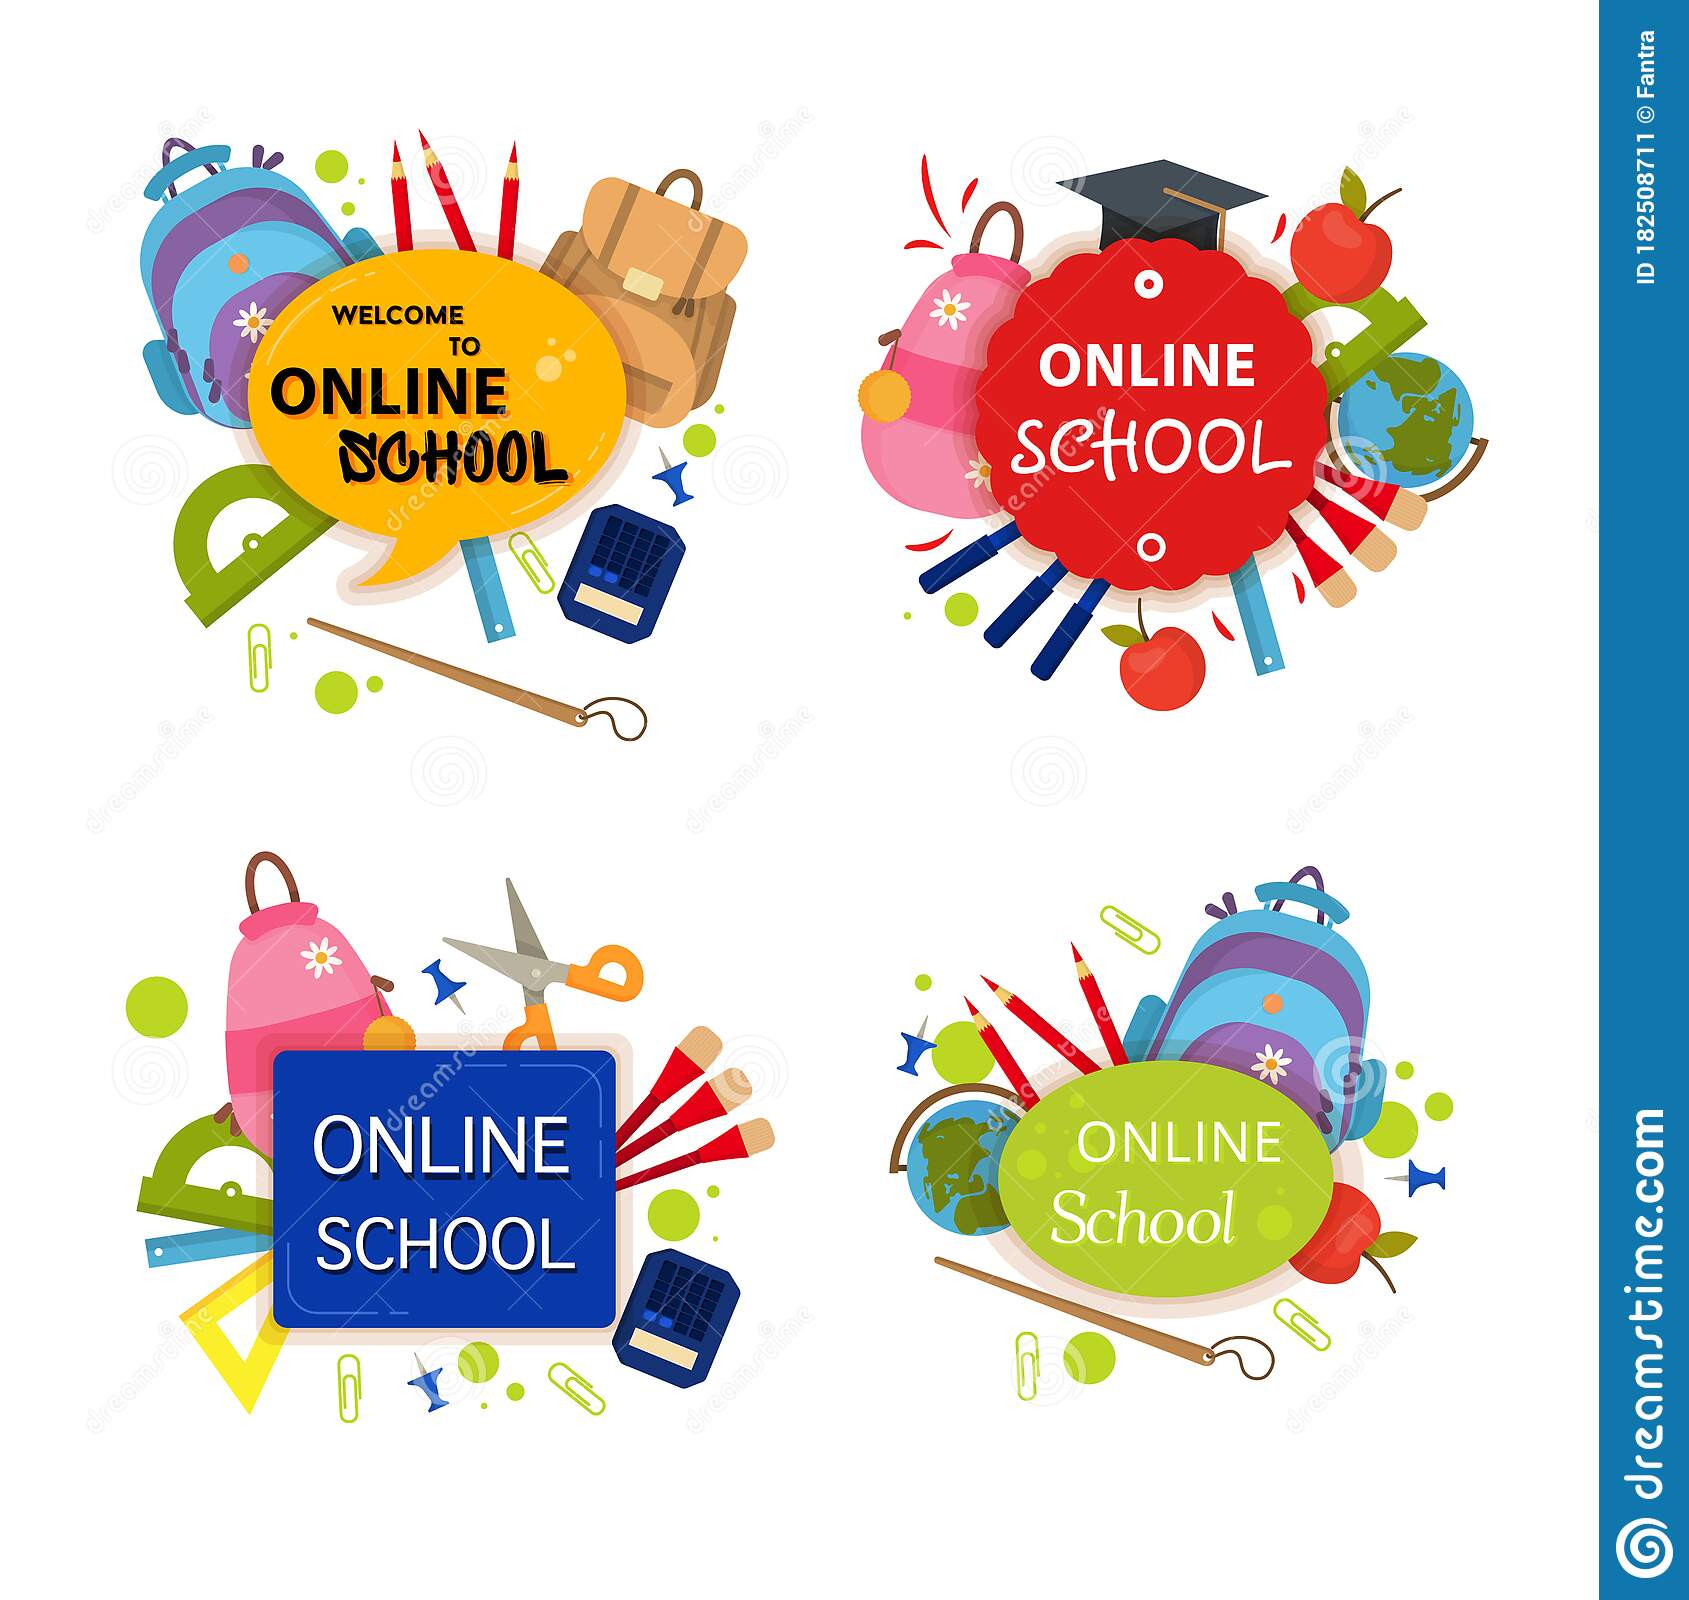 Online School Education Course Stock Vector Illustration Of Course Banner 182508711